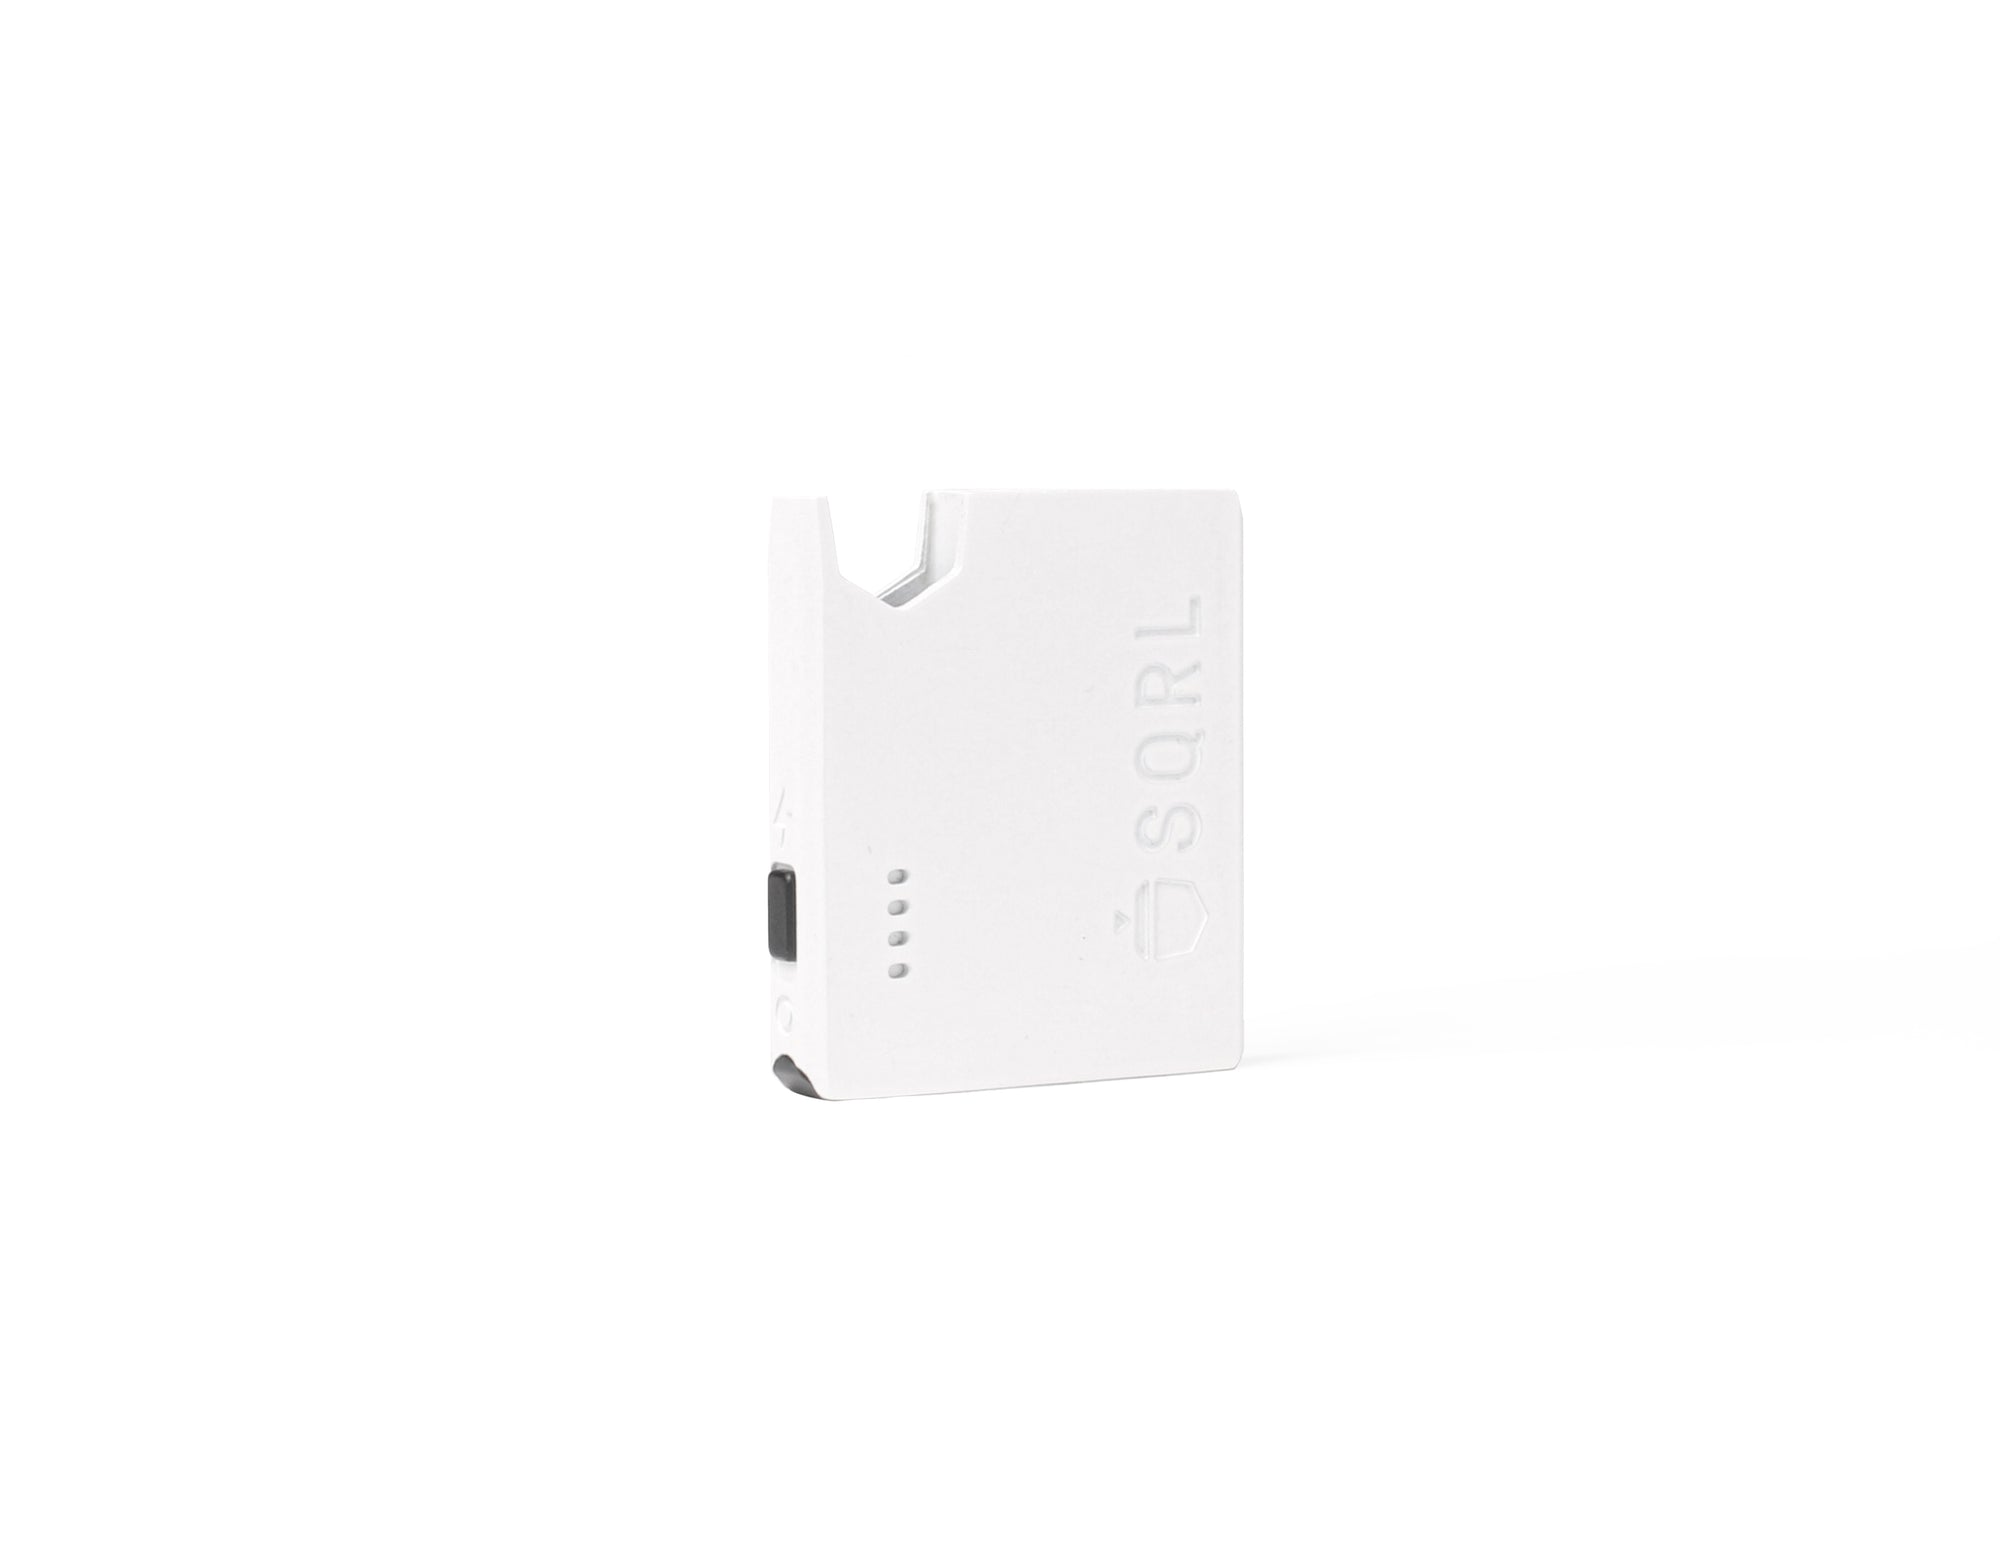 SQRL NCT Compatible Pod Device - White